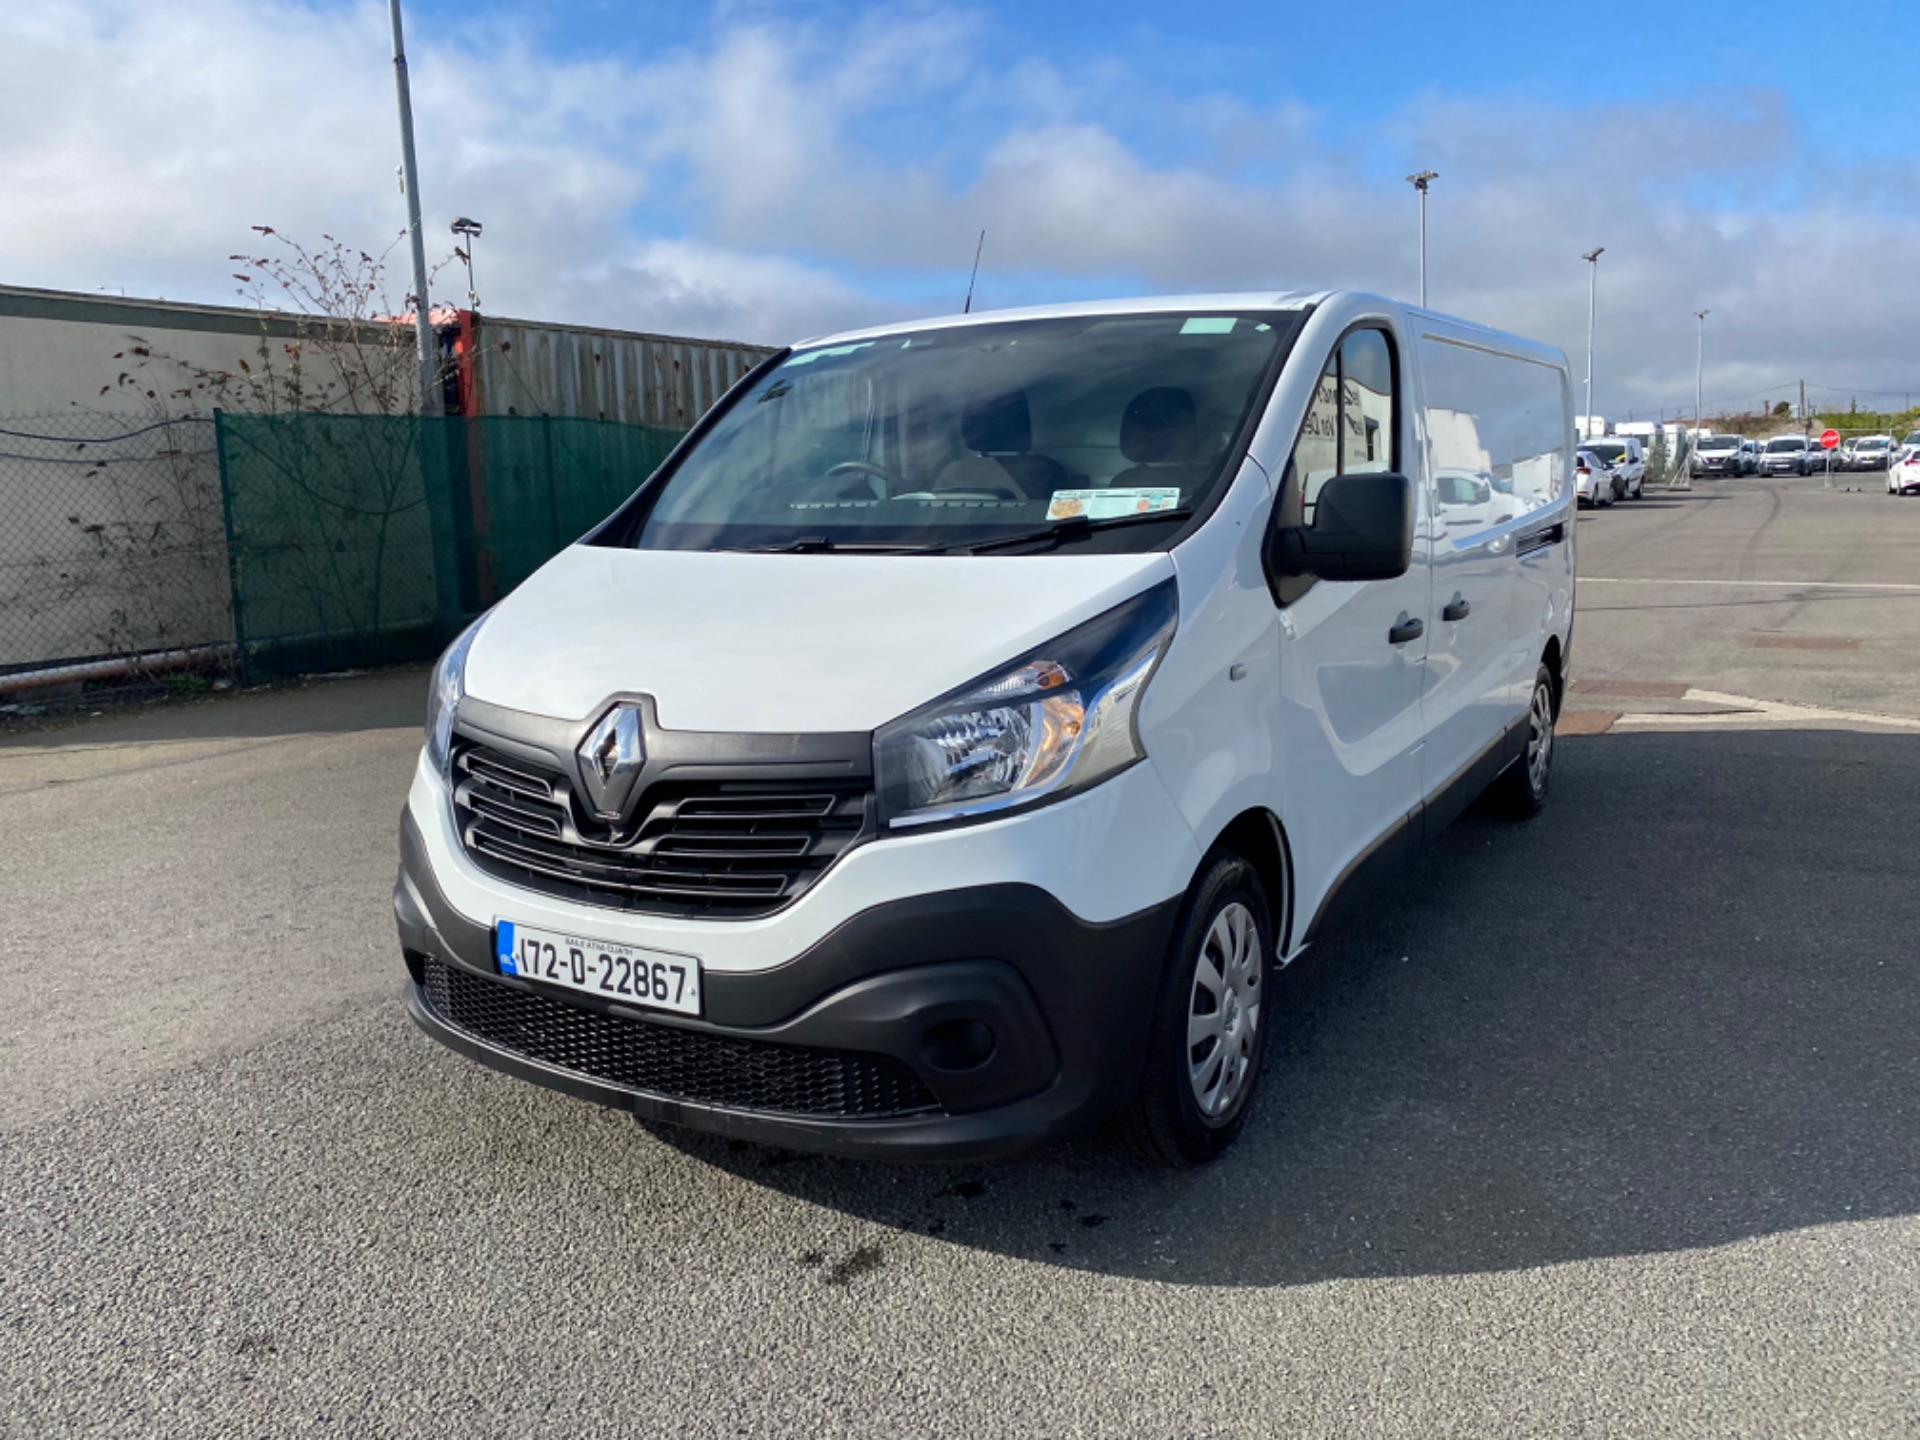 2017 Renault Trafic LL29 DCI 120 Business 3DR (172D22867) Image 3